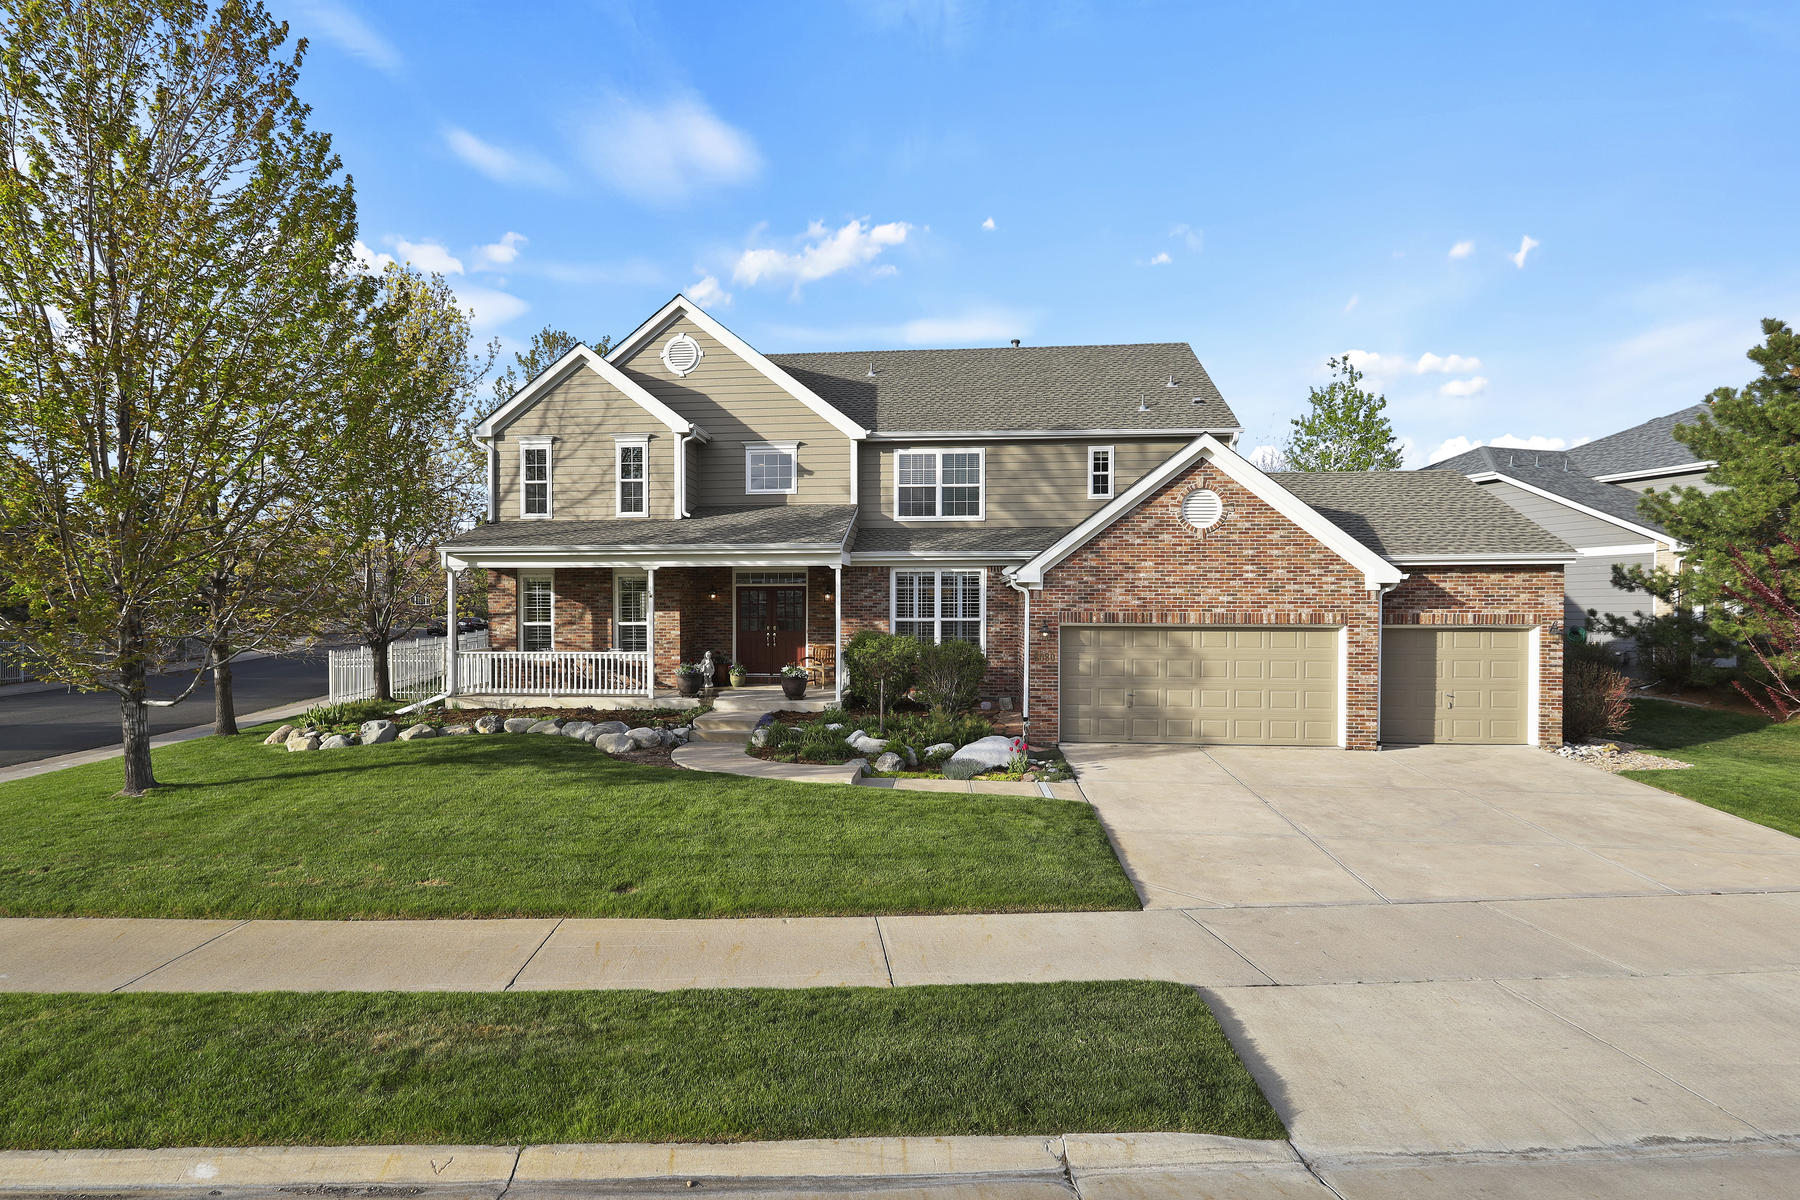 Single Family Homes for Active at 6080 S Biscay Street Aurora, Colorado 80016 United States